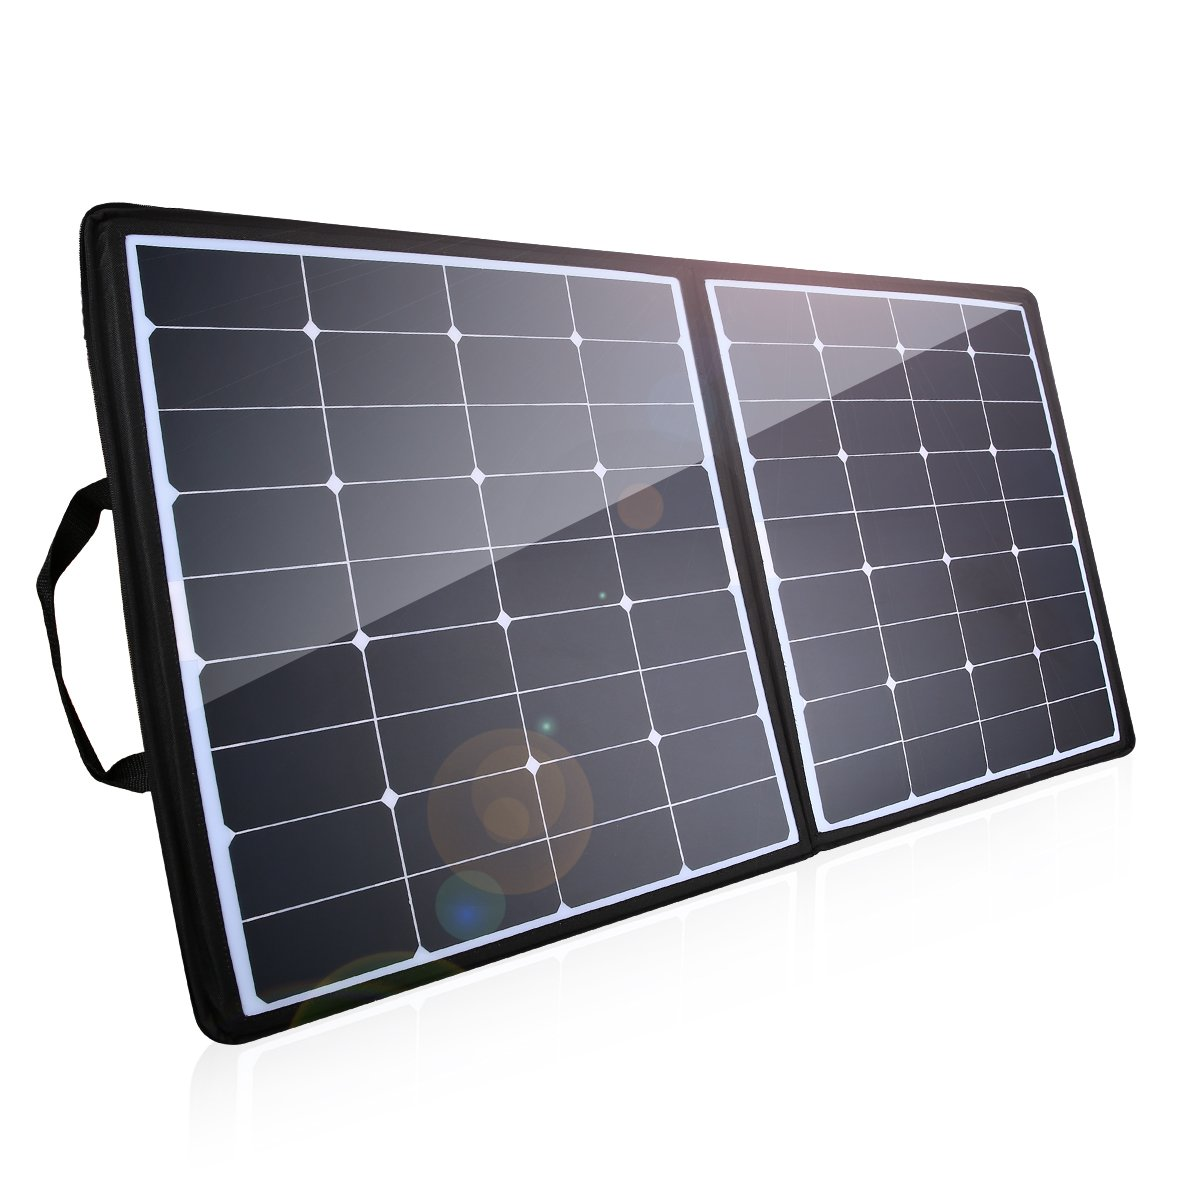 Poweradd [High Effiency] 100W Solar Charger, 18V 12V SUNPOWER Solar Panel Water/Shock/Dust Resistant Foldable Panel for Laptop, Macbook, iPhone, Samsung, Generator, ChargerCenter, UPS and More